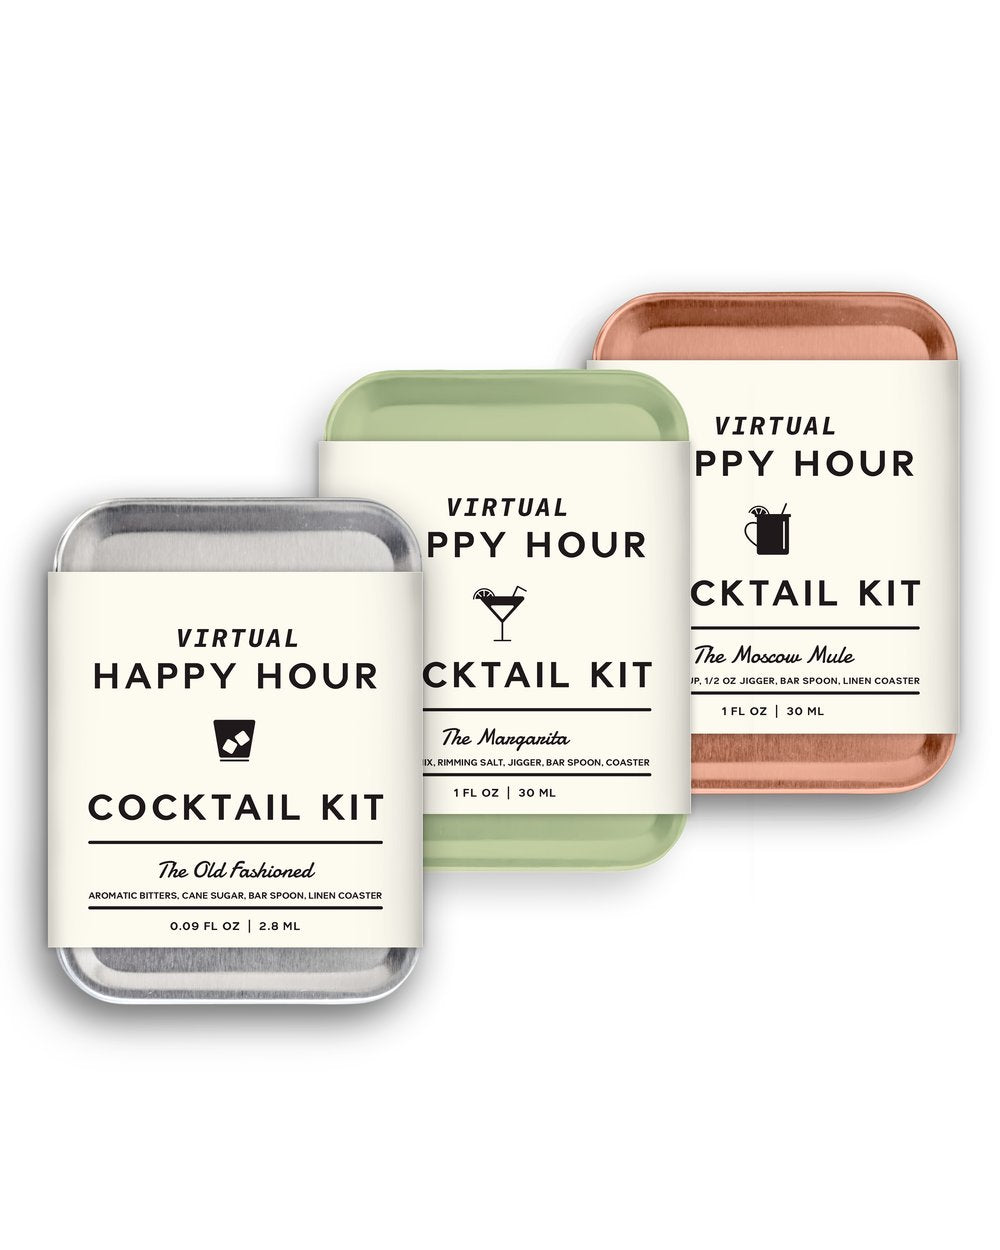 The Virtual Happy Hour Cocktail Set